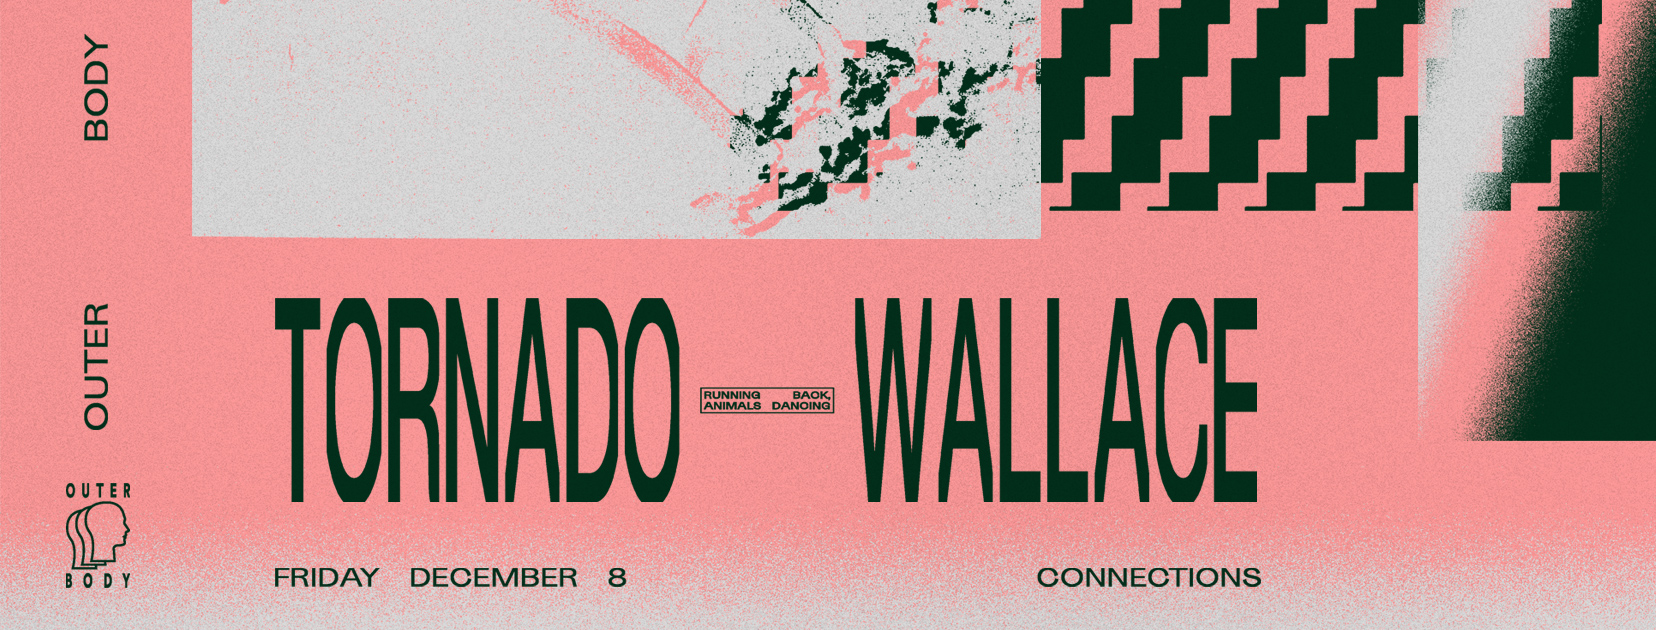 Tickets for Outer Body Dec 8th // w~Tornado Wallace in Northbridge from Ticketbooth